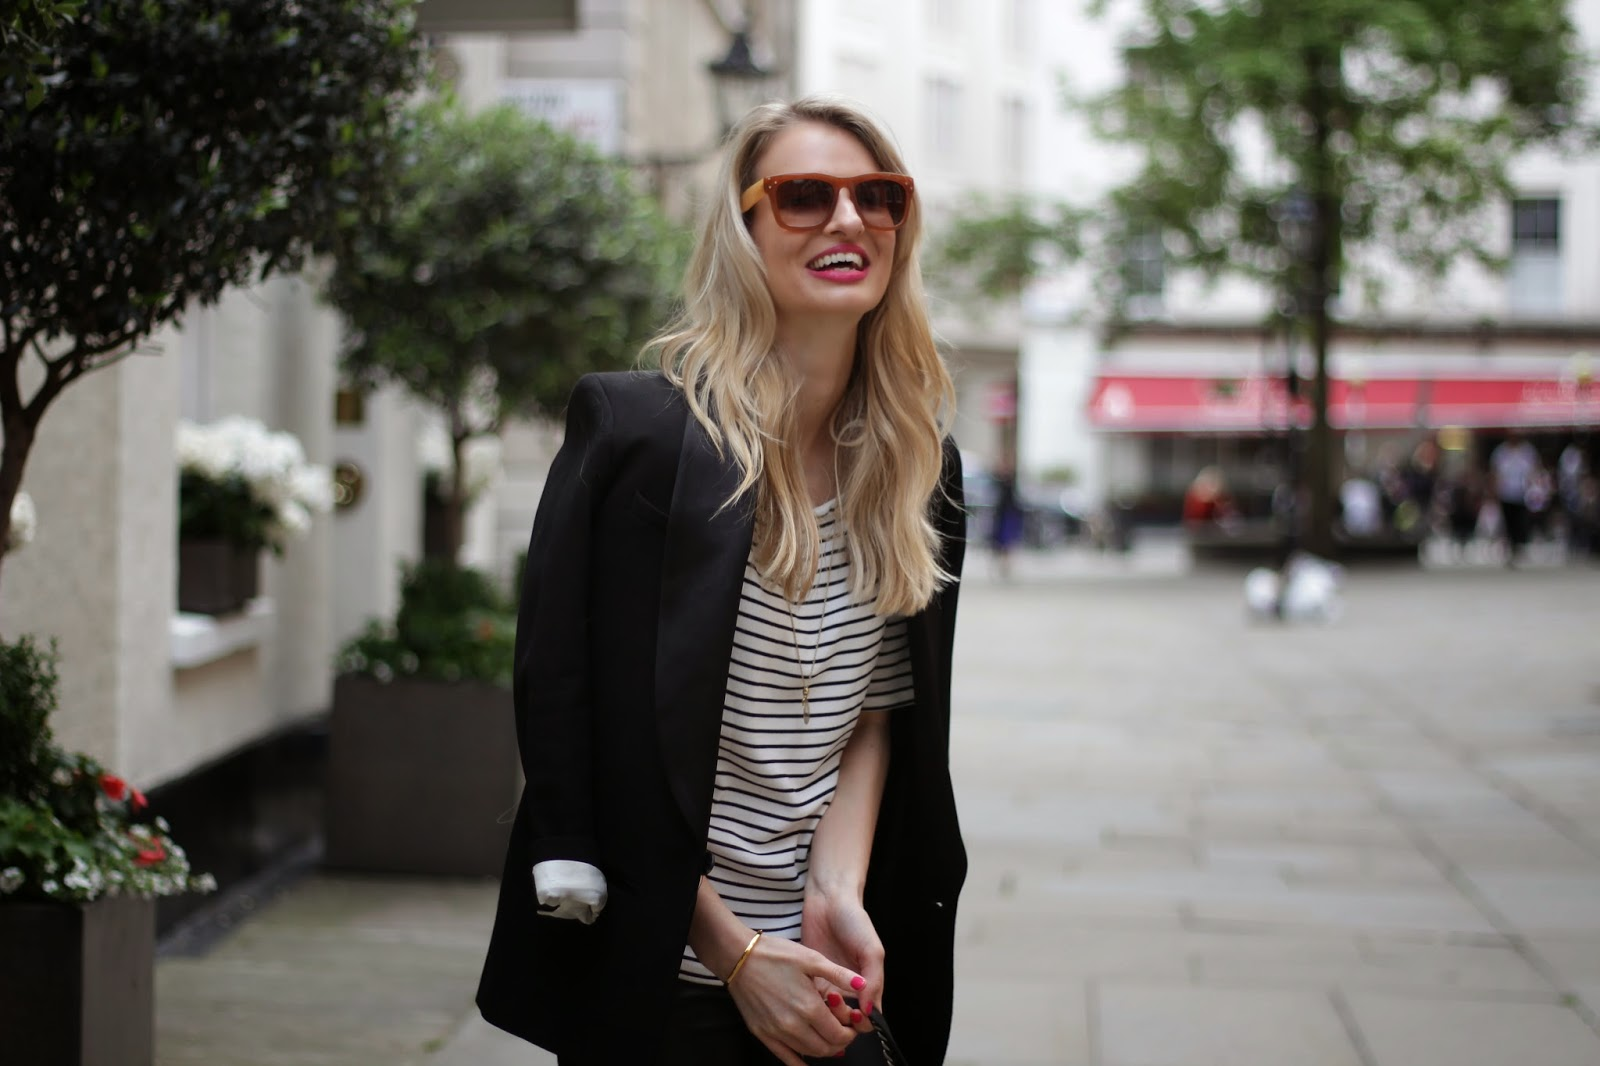 celine style sunglasses, striped top, black blazer, boyfriend blazer